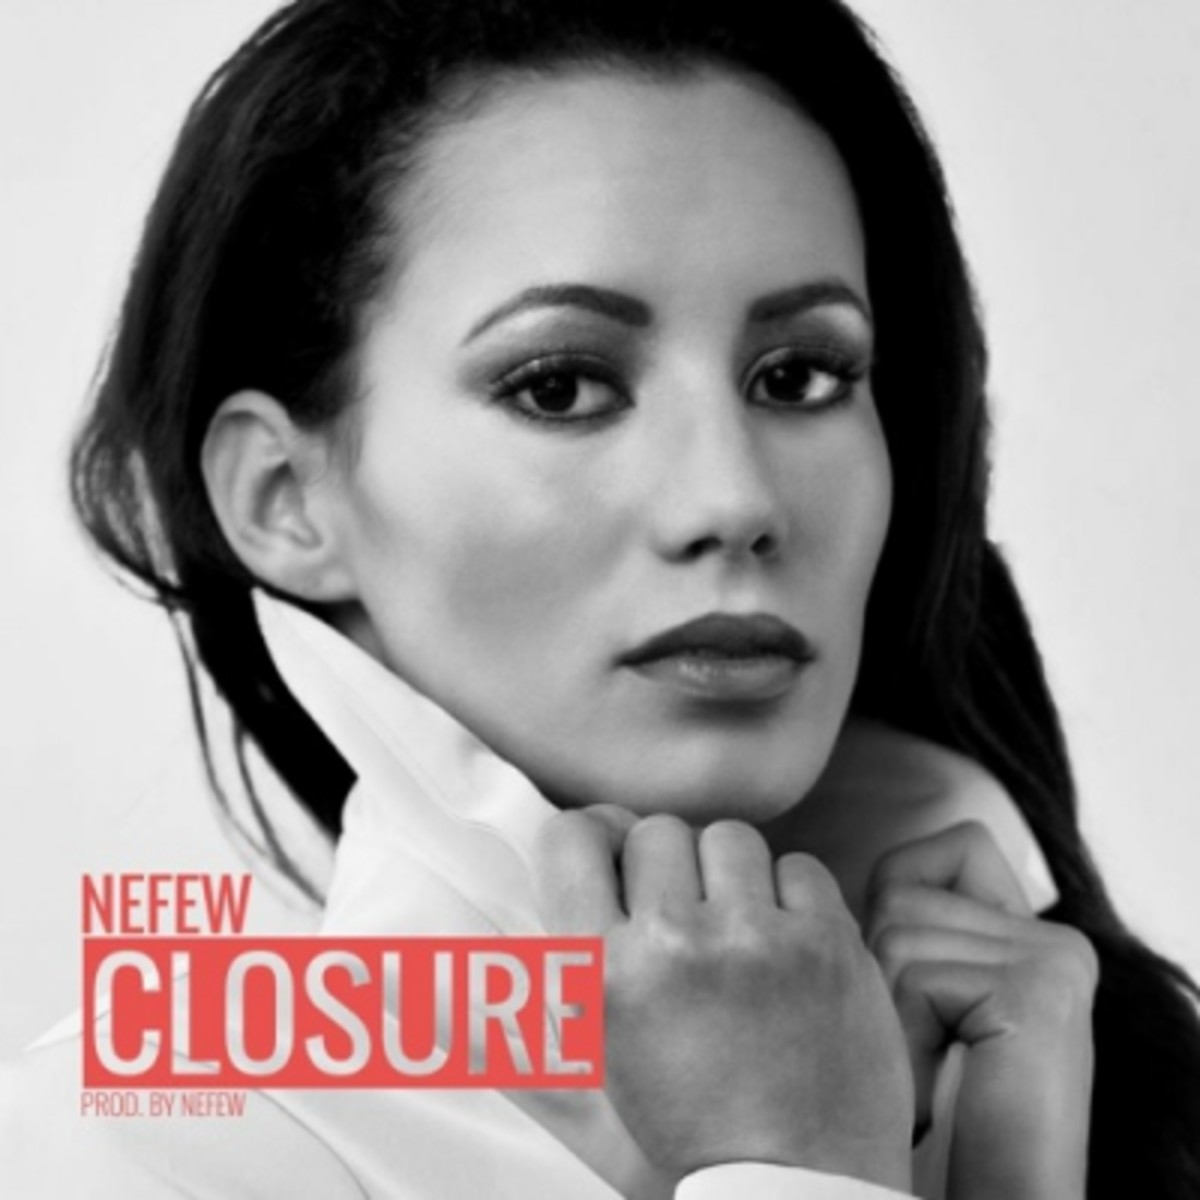 nefew-closure.jpg